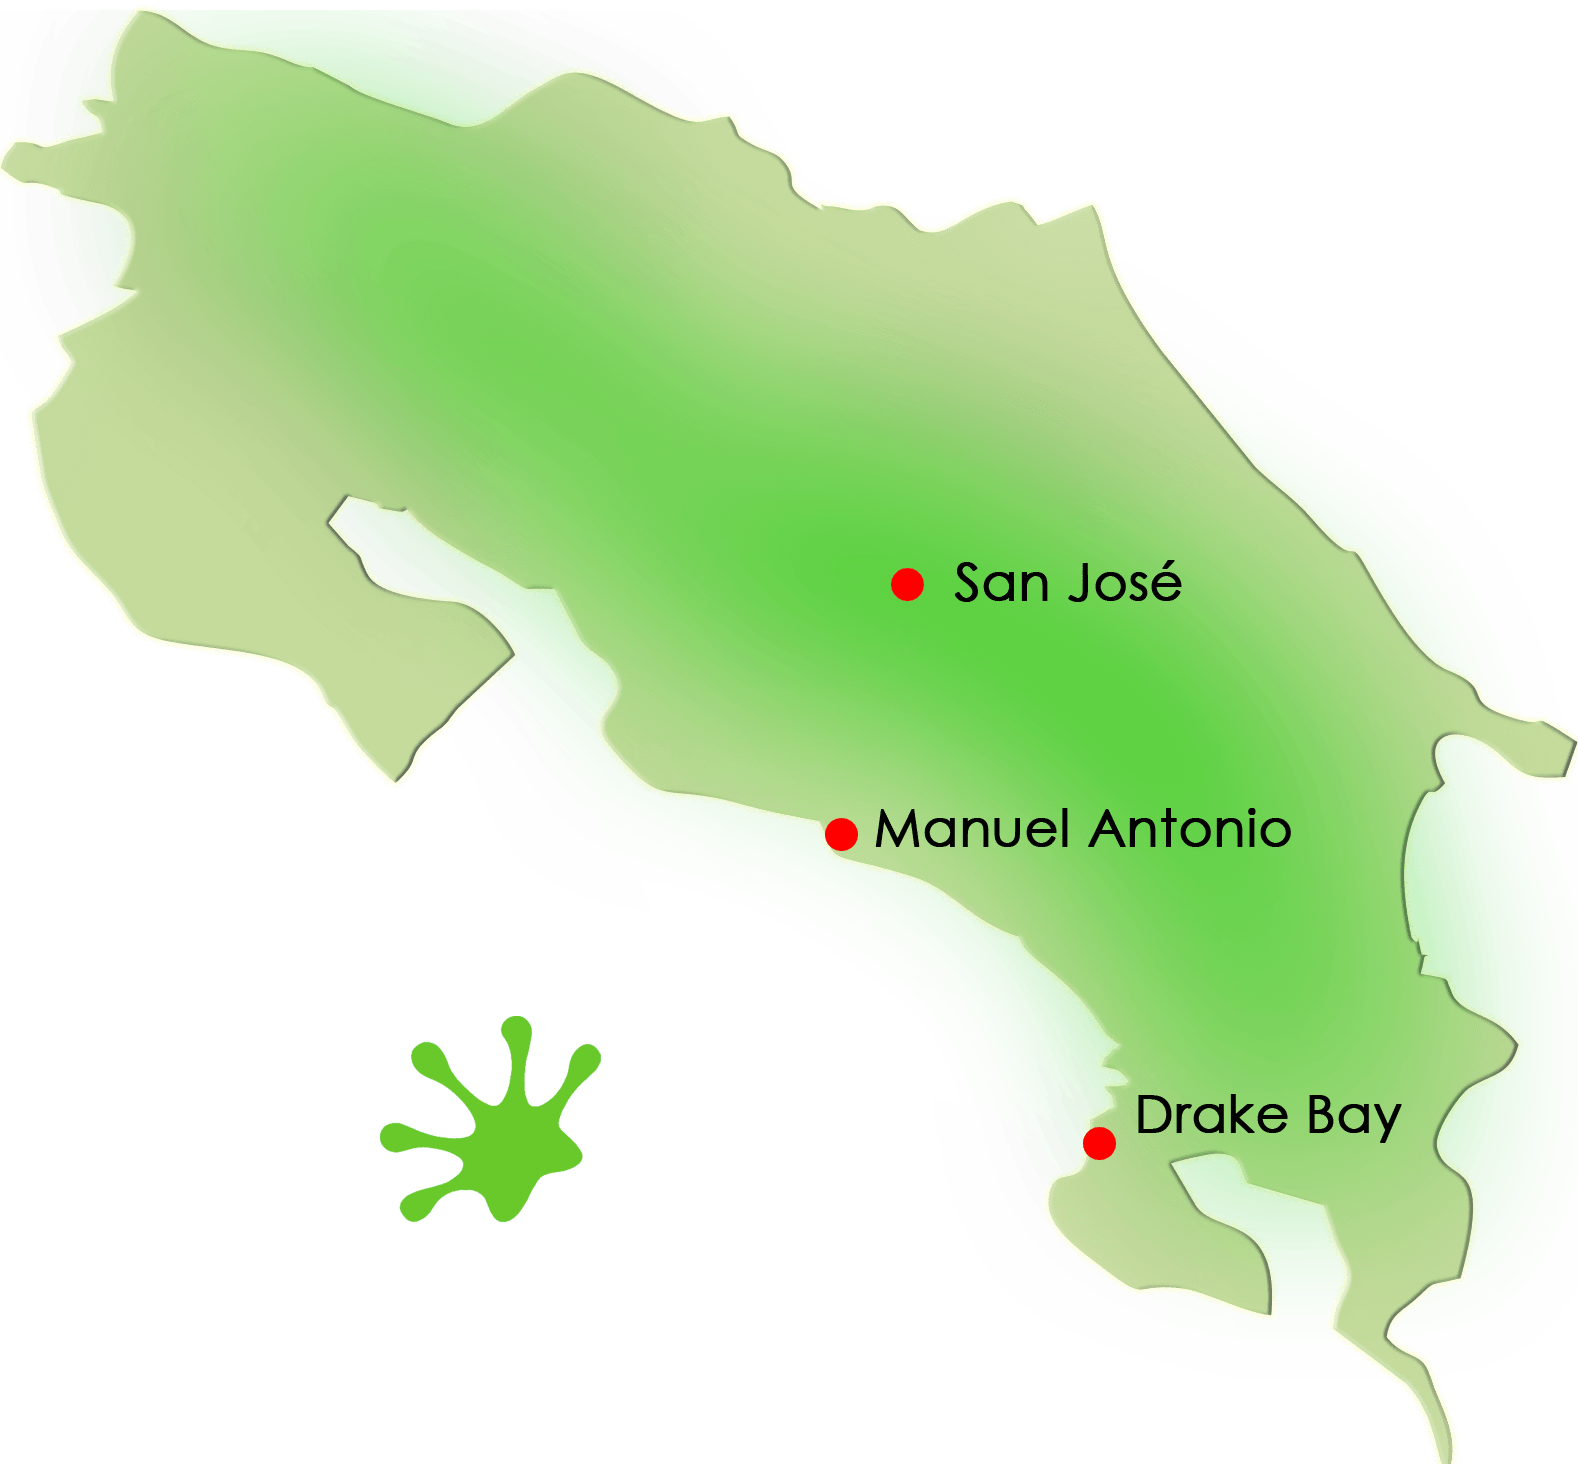 Gecko Trail | What to Do in Costa Rica - SJ-MA-Drake